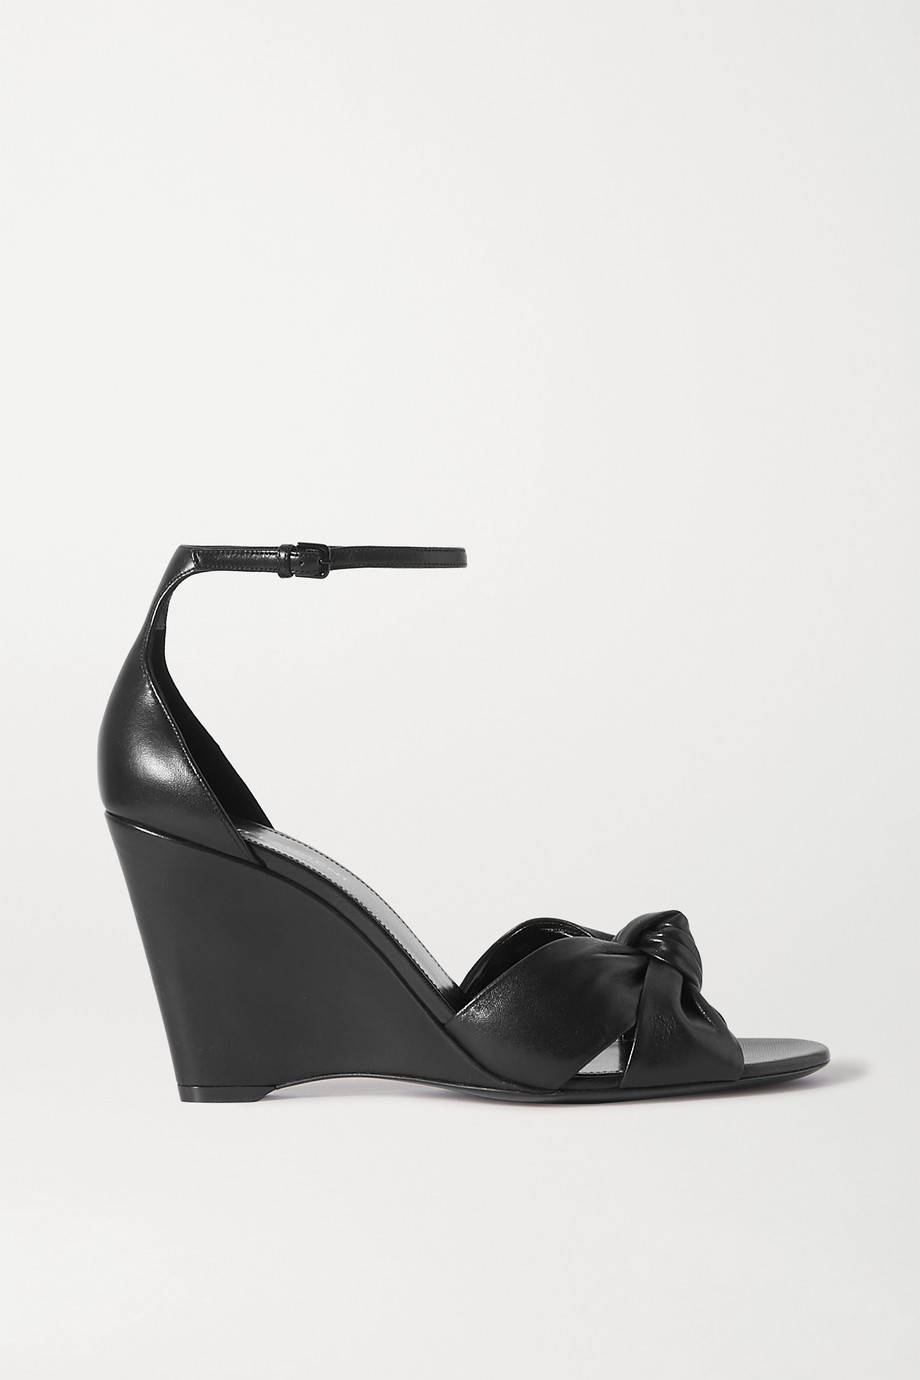 SAINT LAURENT Bianca knotted leather wedge sandals